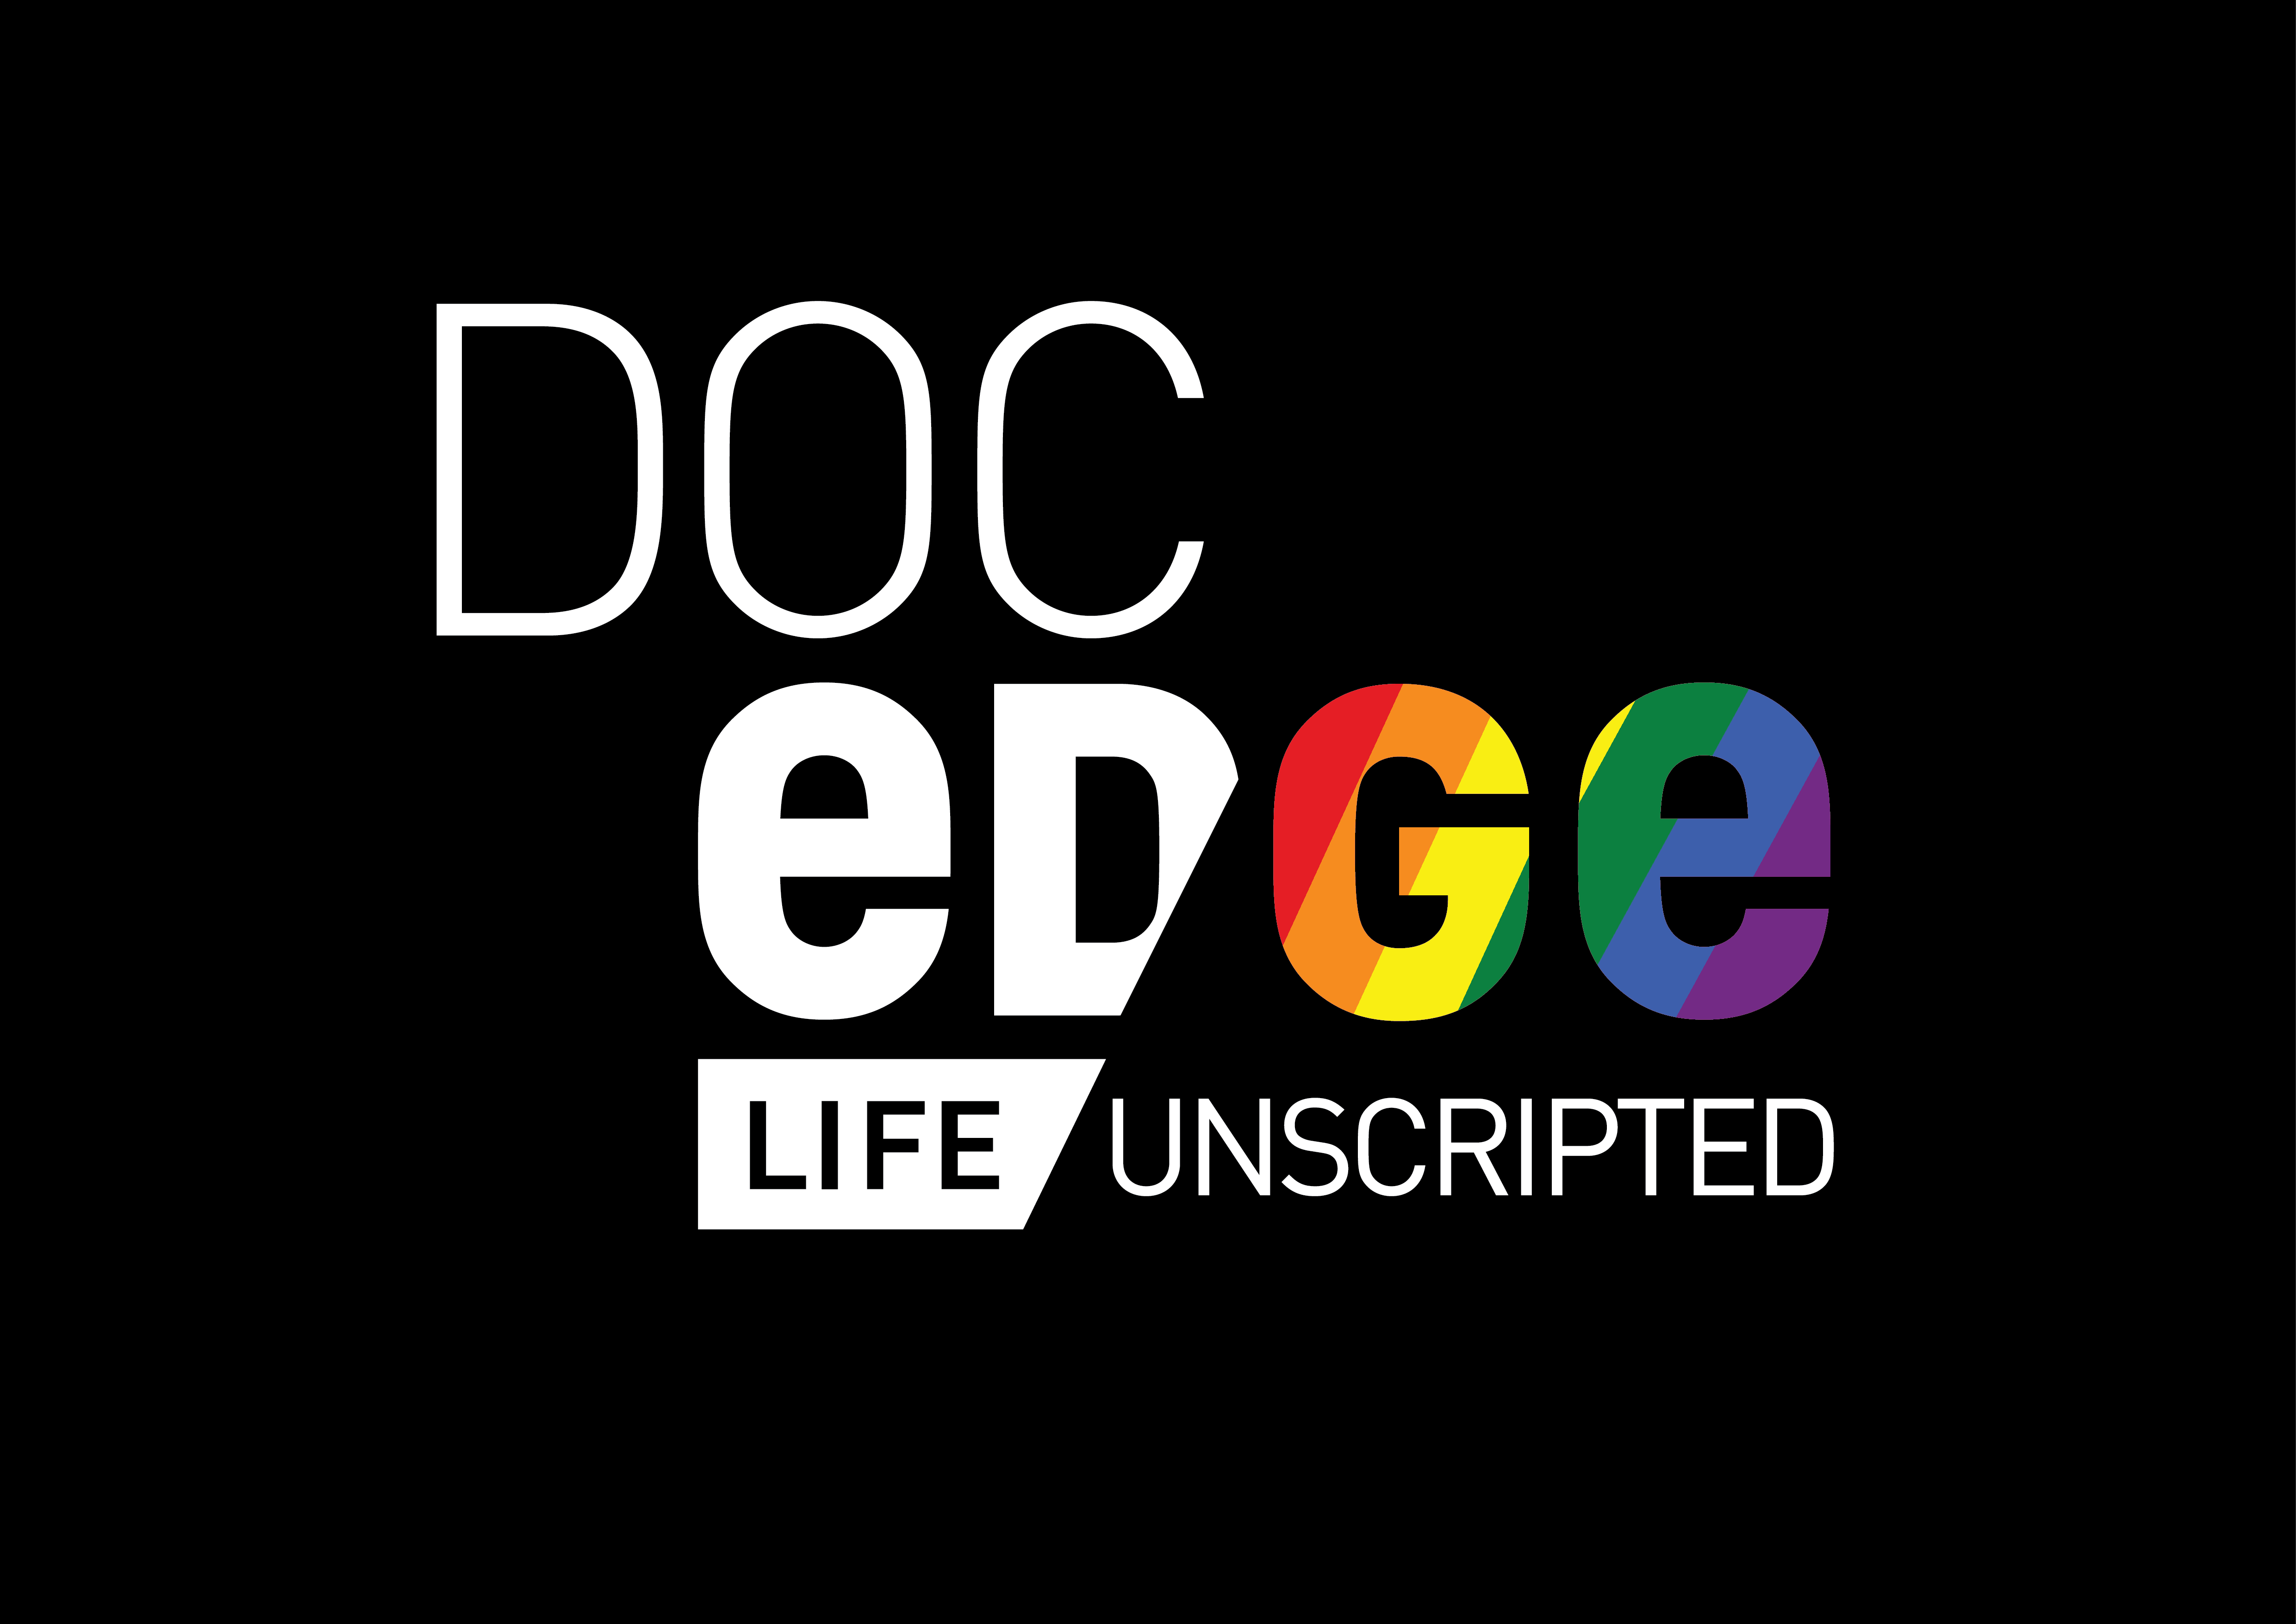 Doc Edge Pride presents: Short films